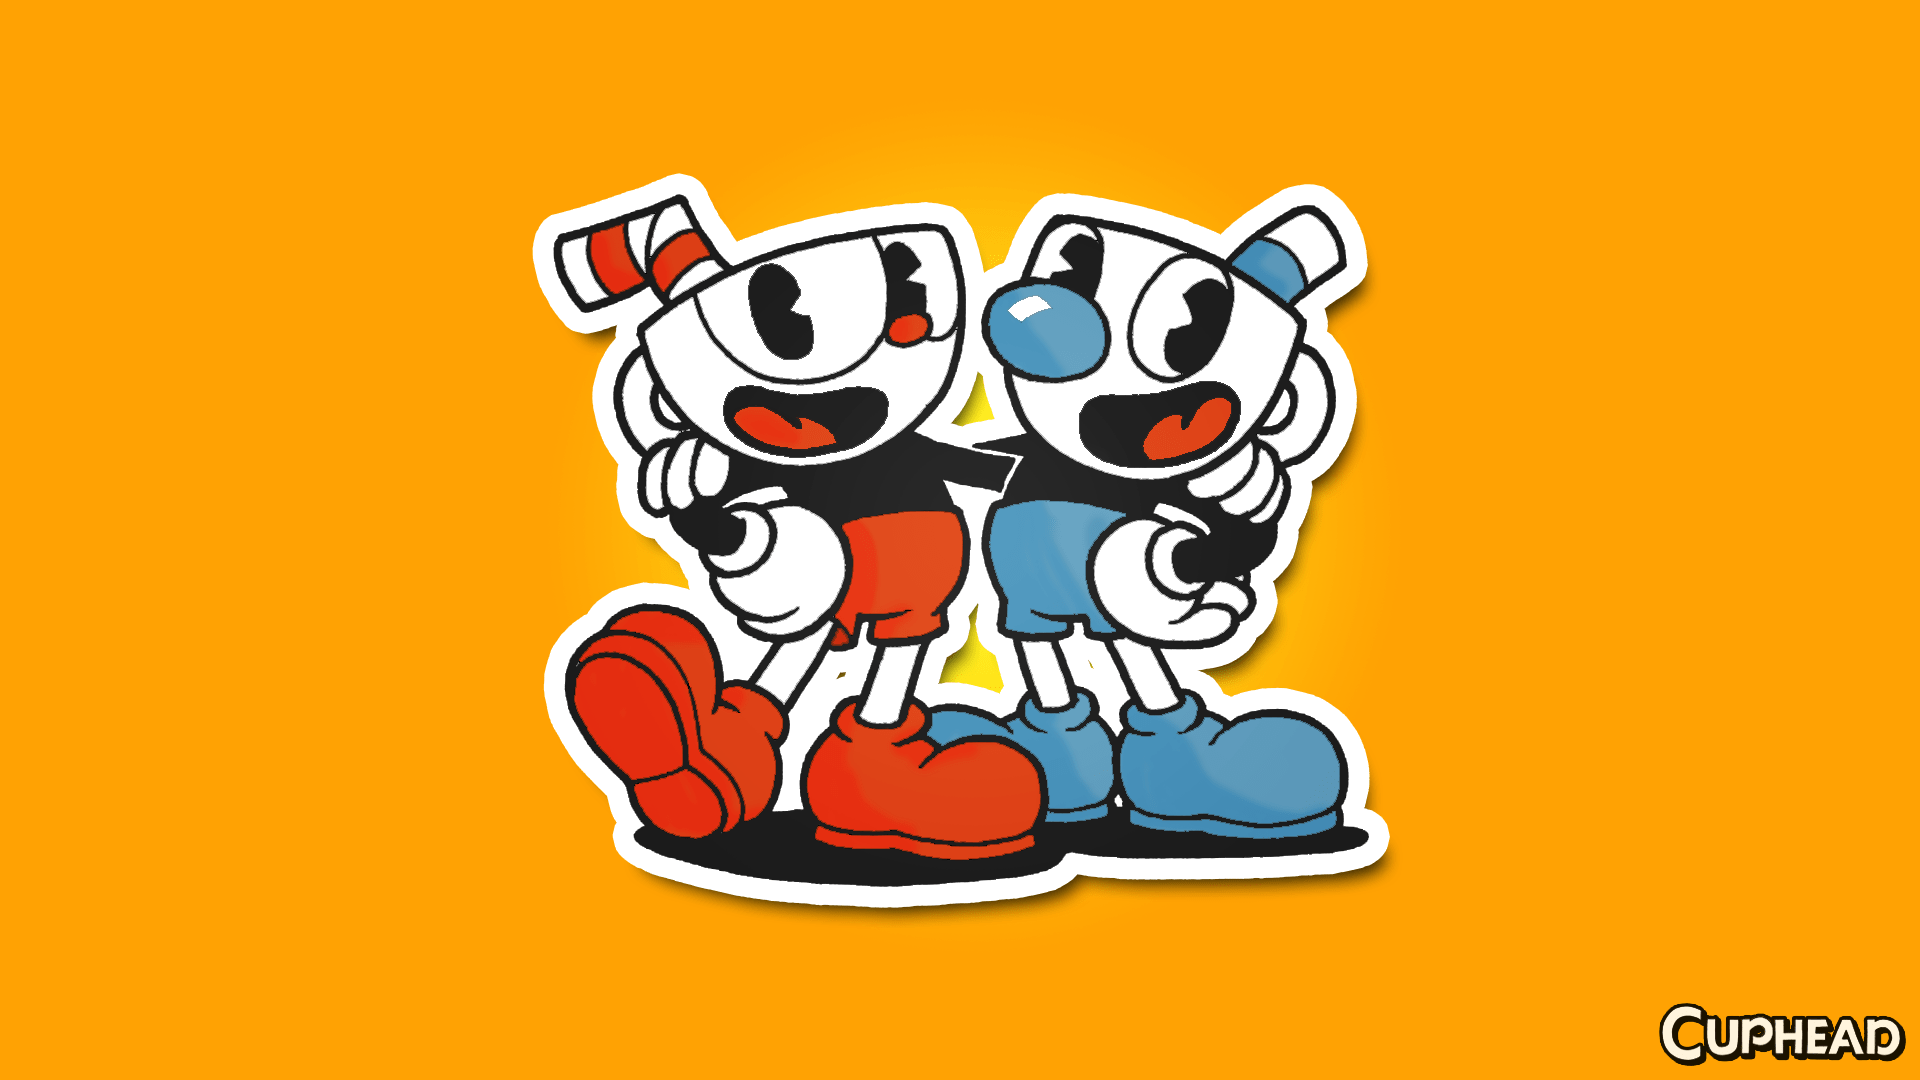 Iphone Se Wallpaper 4k Cuphead Wallpaper Full Hd Papel De Parede And Background